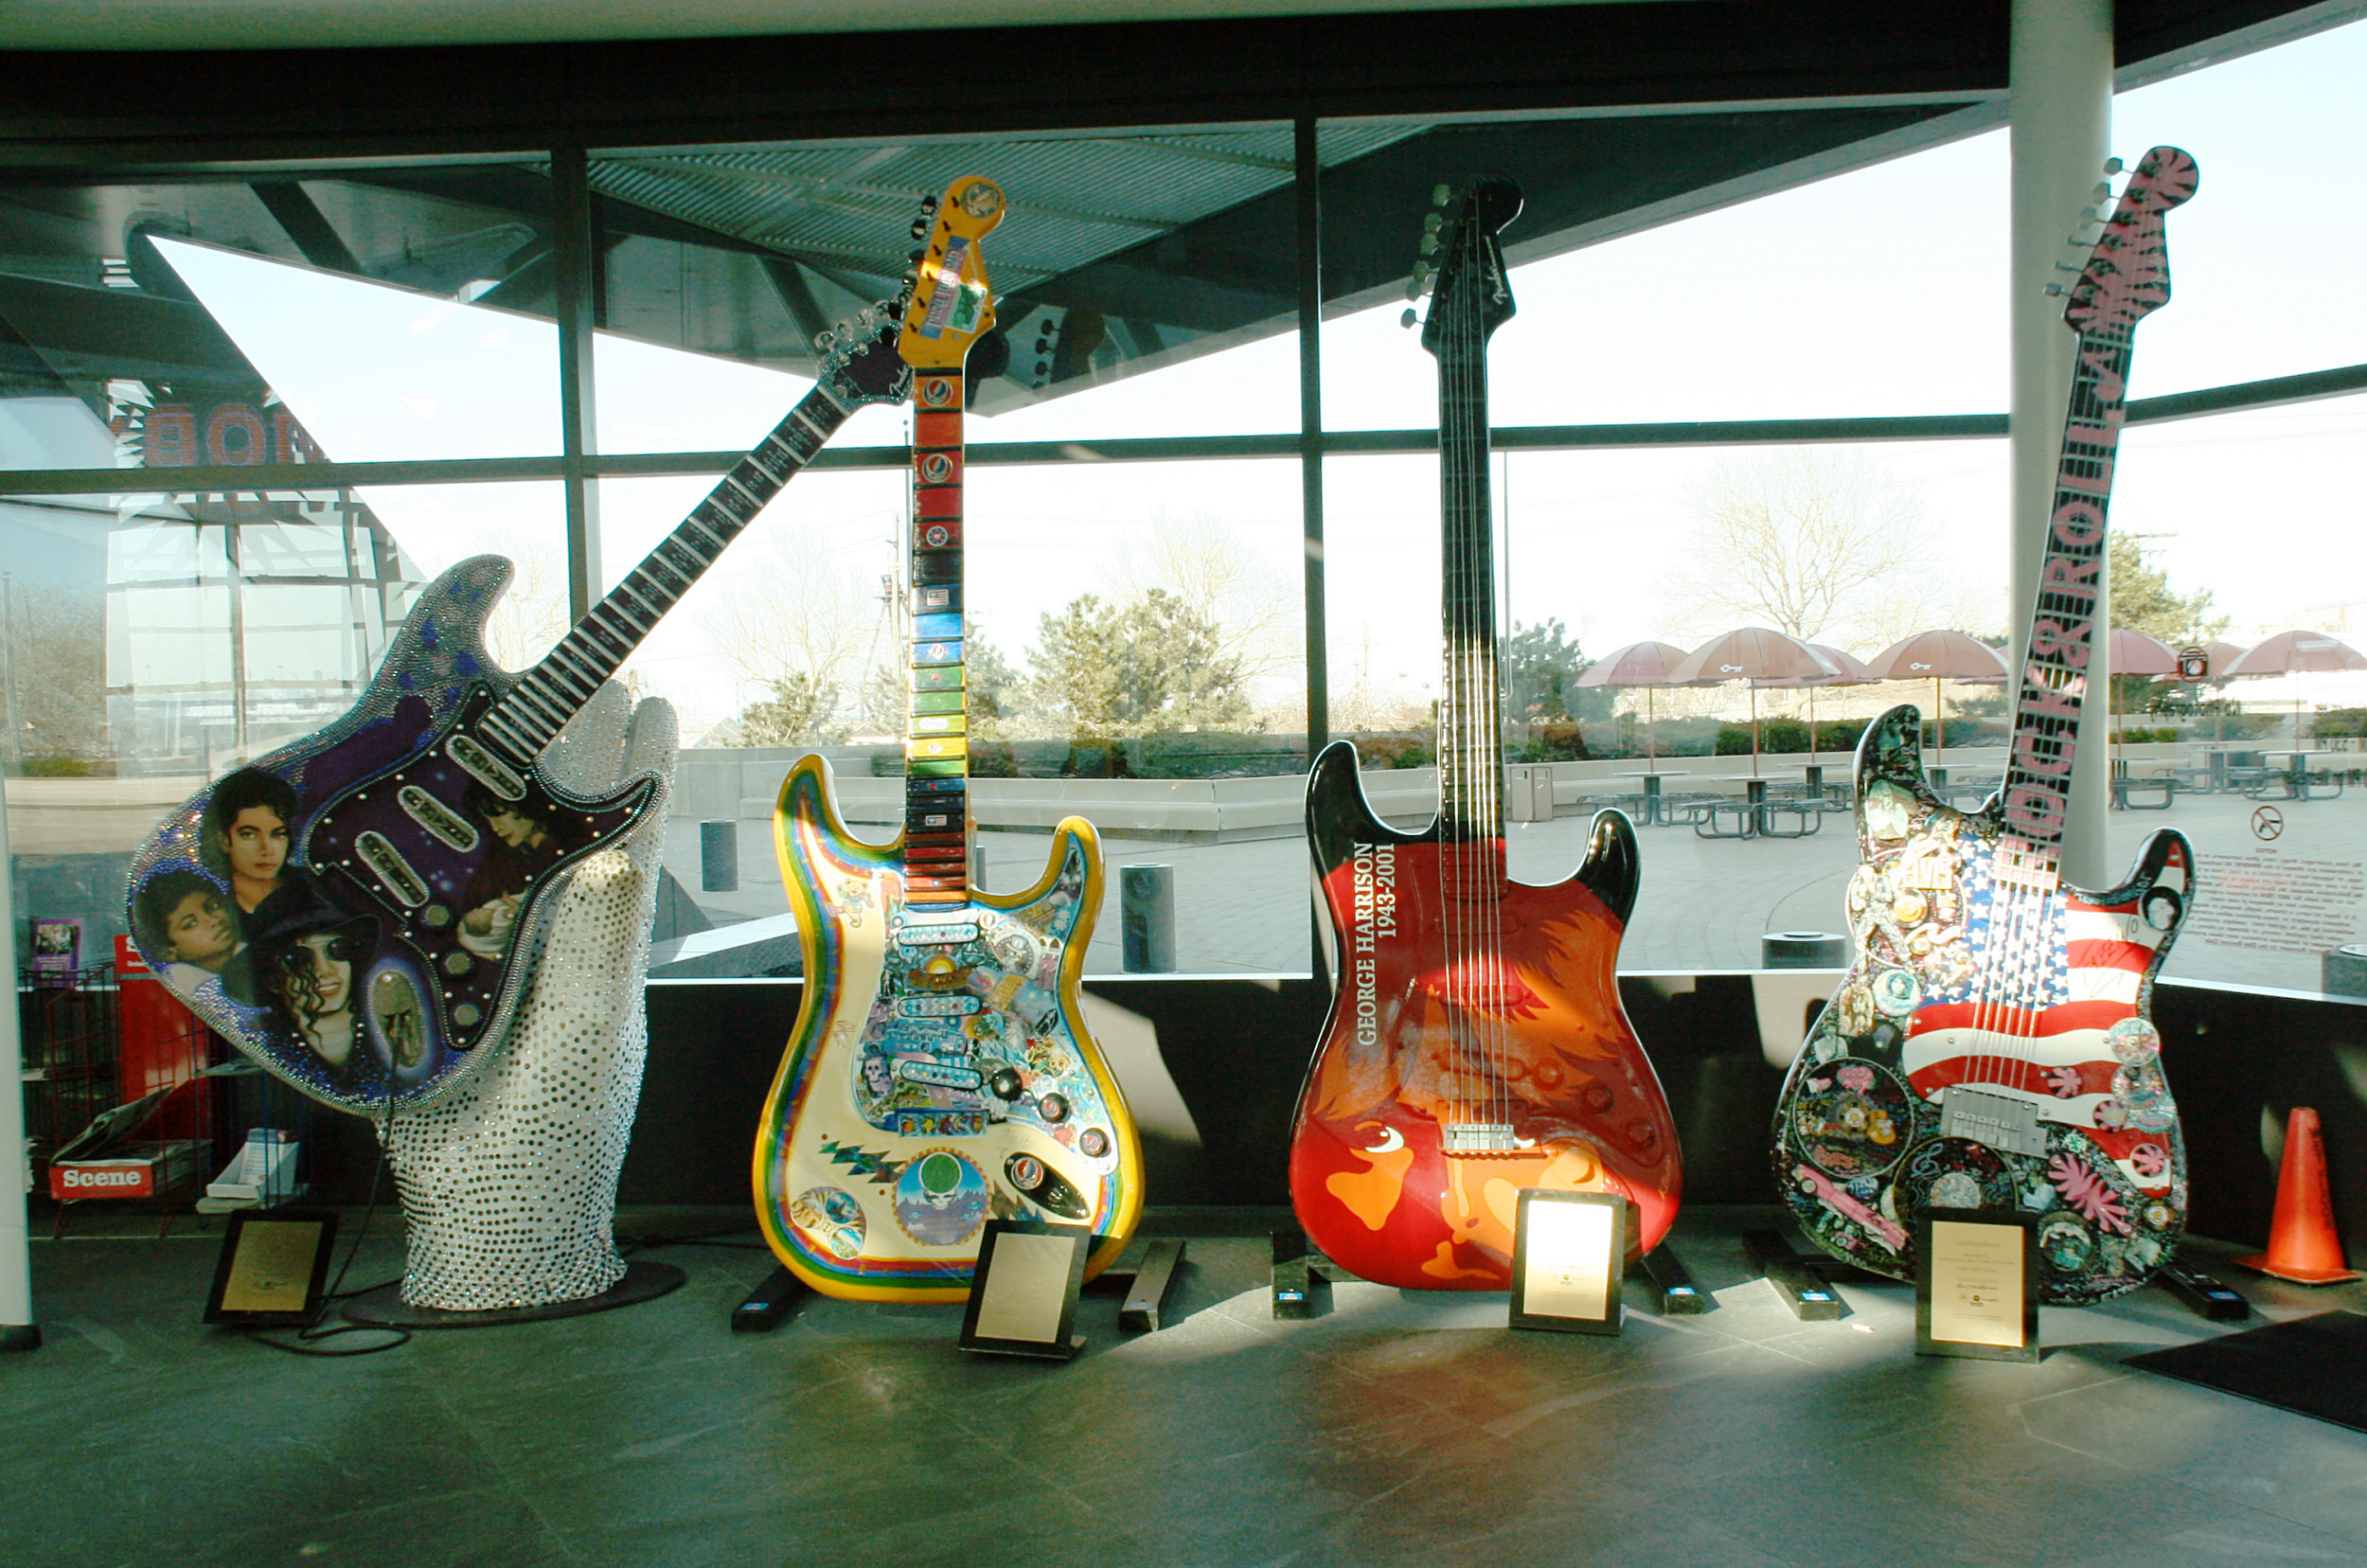 Postcards from the Rock & Roll Hall of Fame